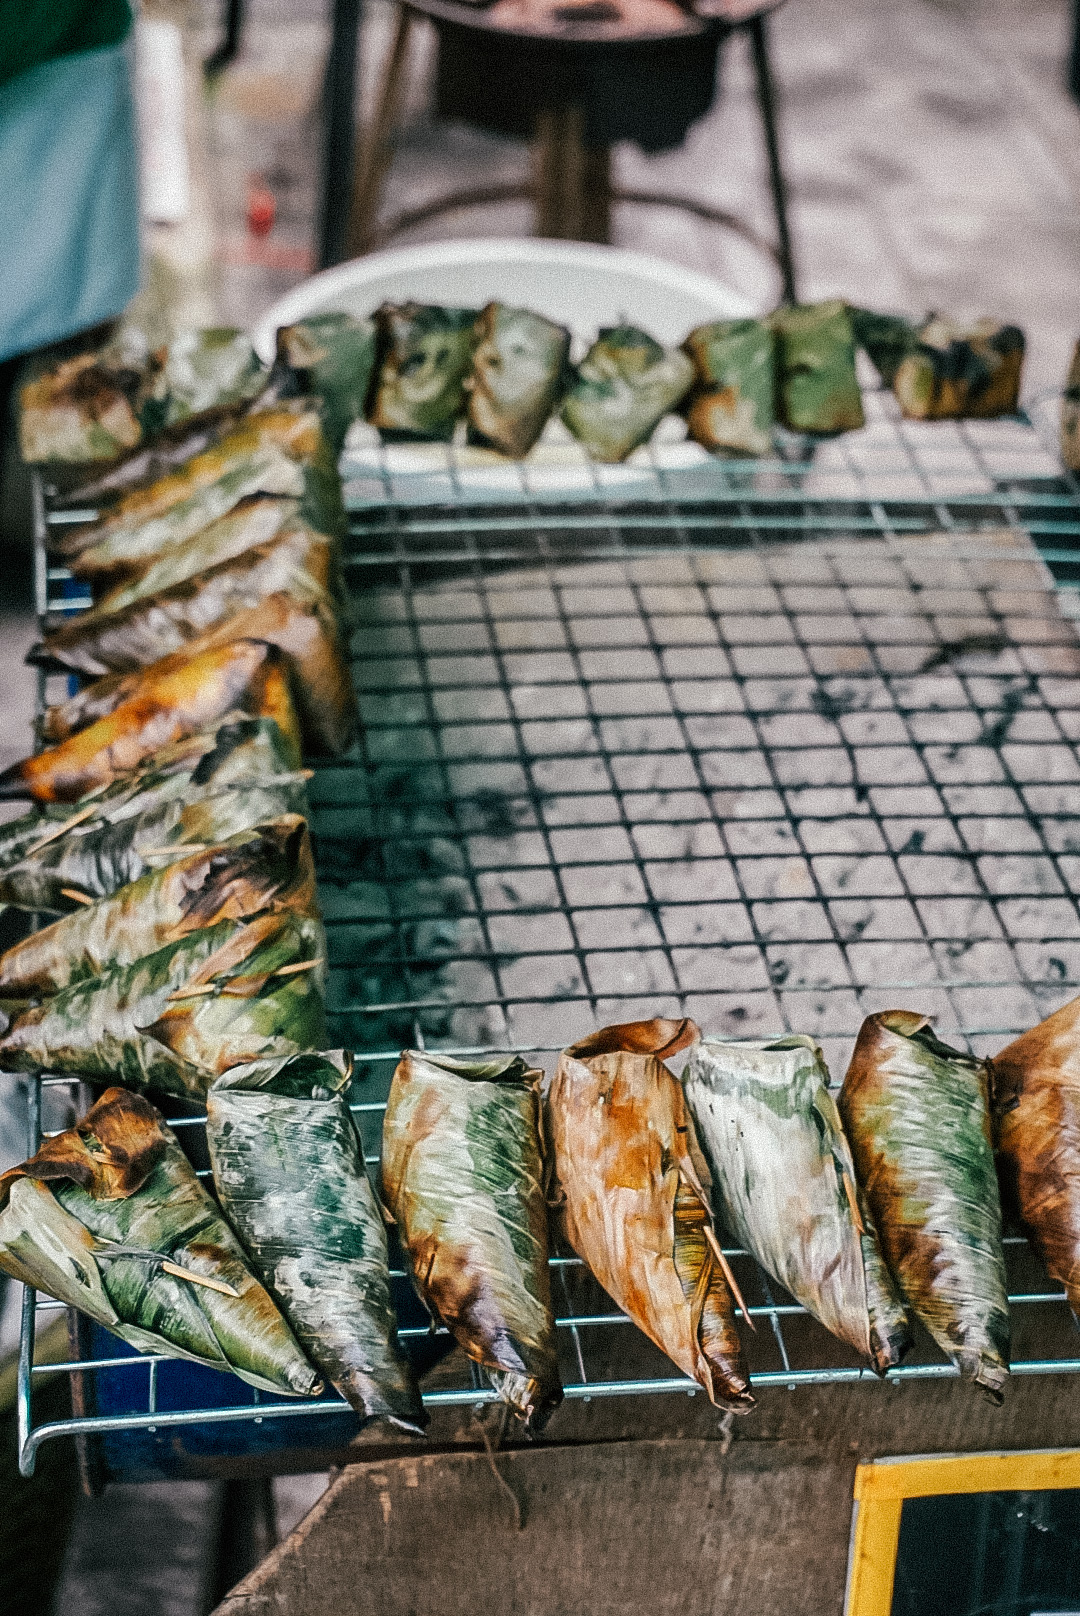 Trying new foods at Taling Chan Market, 48 hours in Bangkok